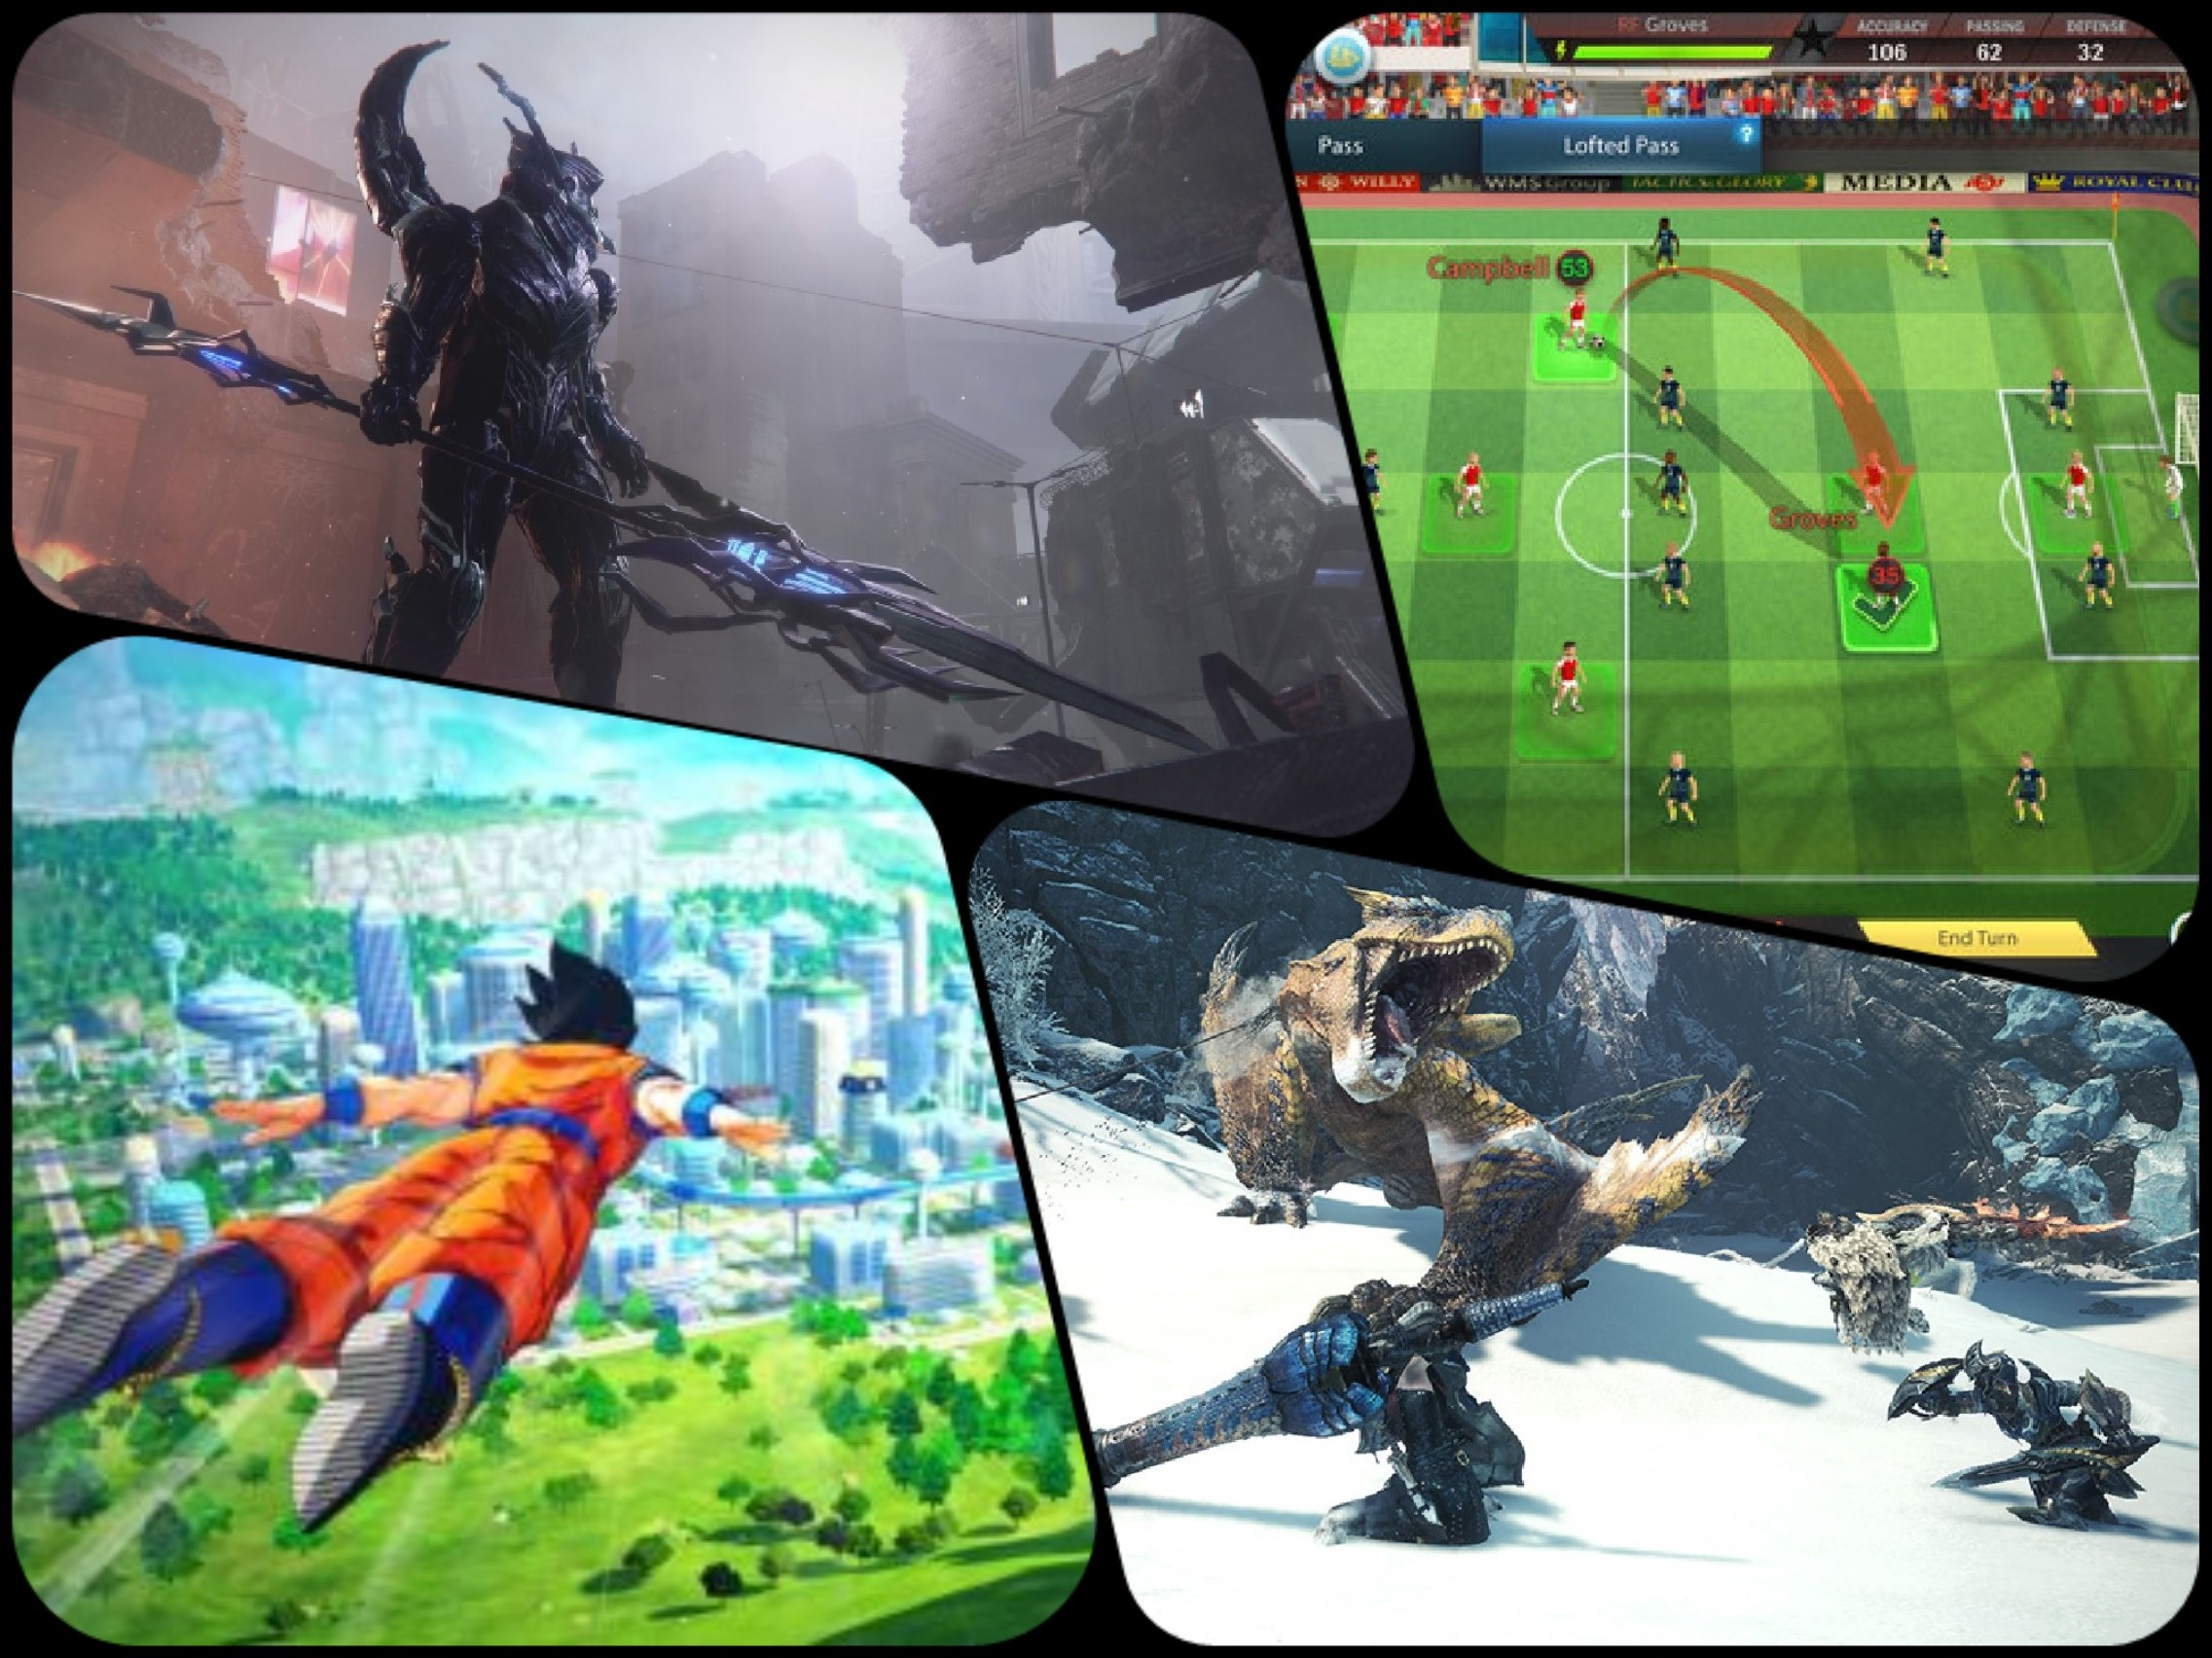 games 14.1.2020